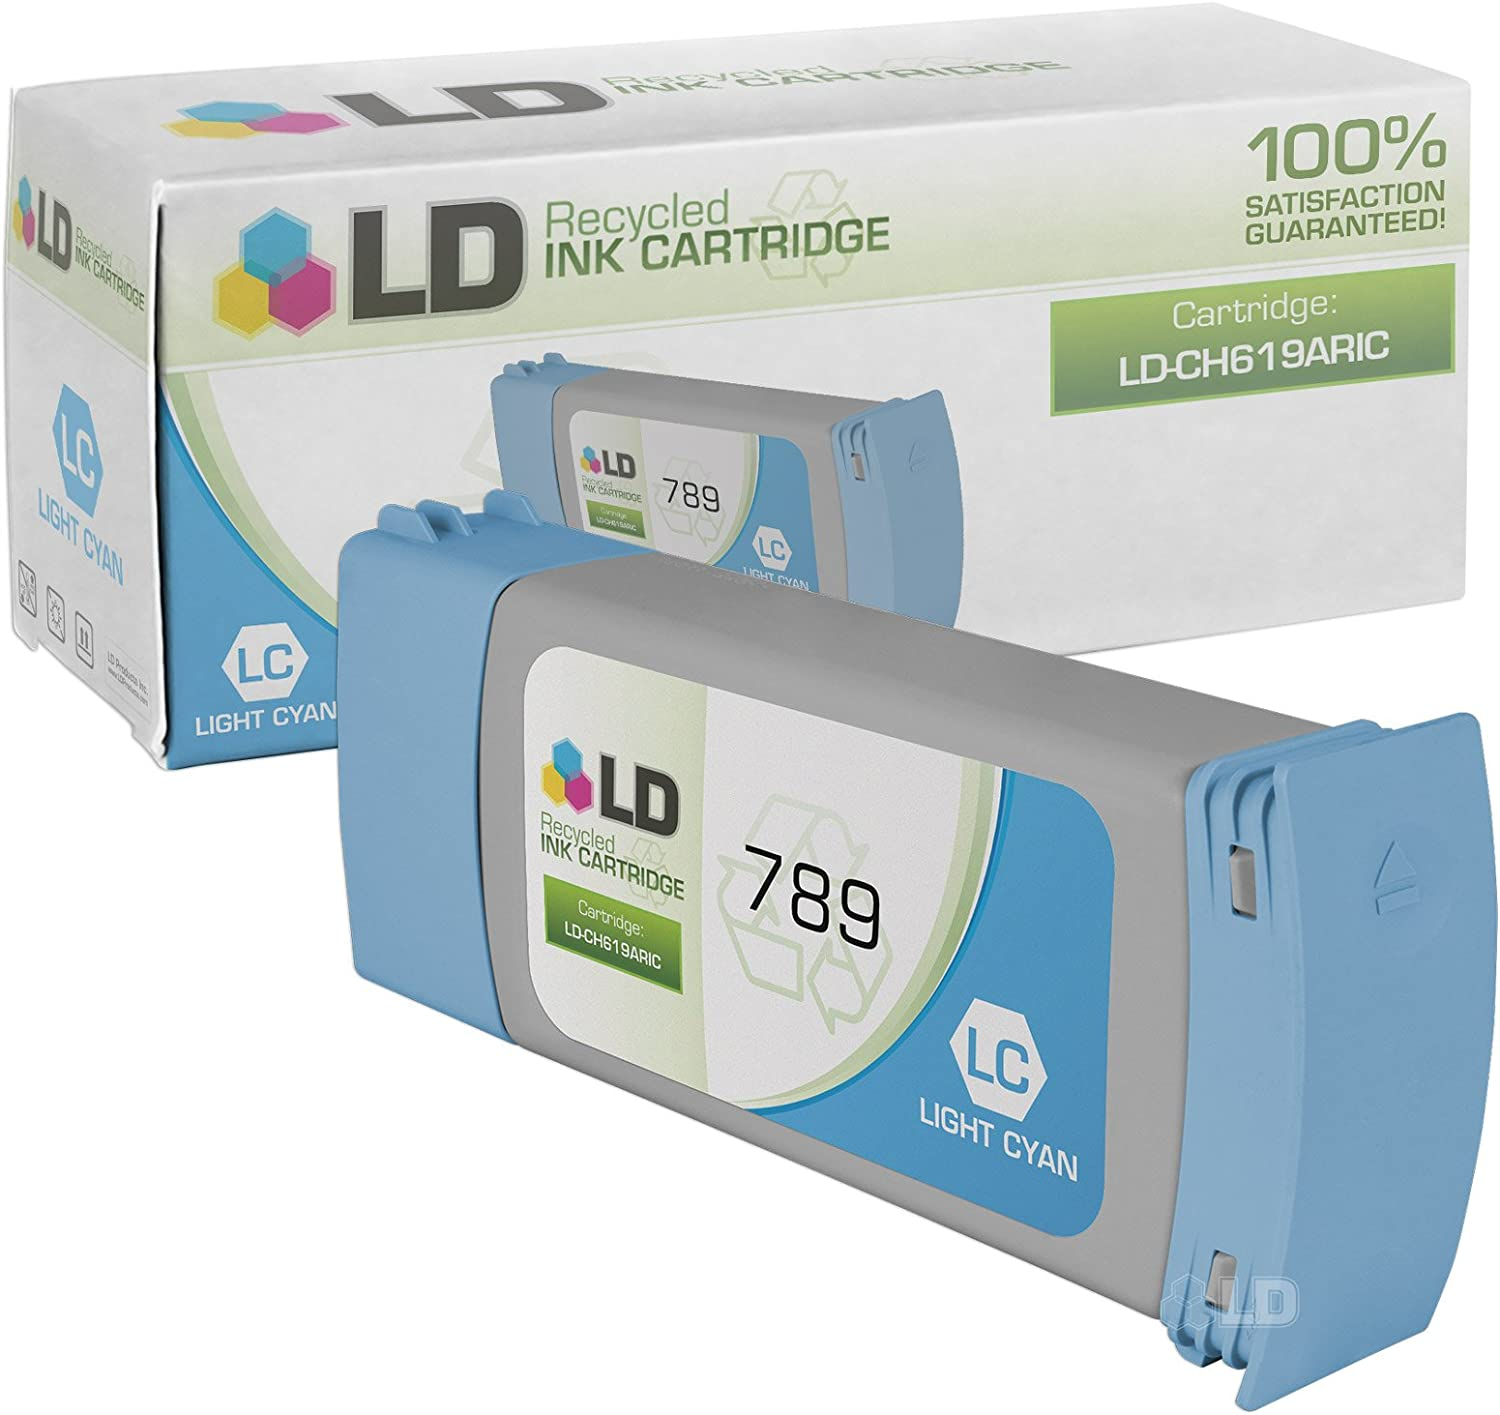 LD Remanufactured Ink Cartridge Replacement for HP 789 CH619A (Light Cyan)